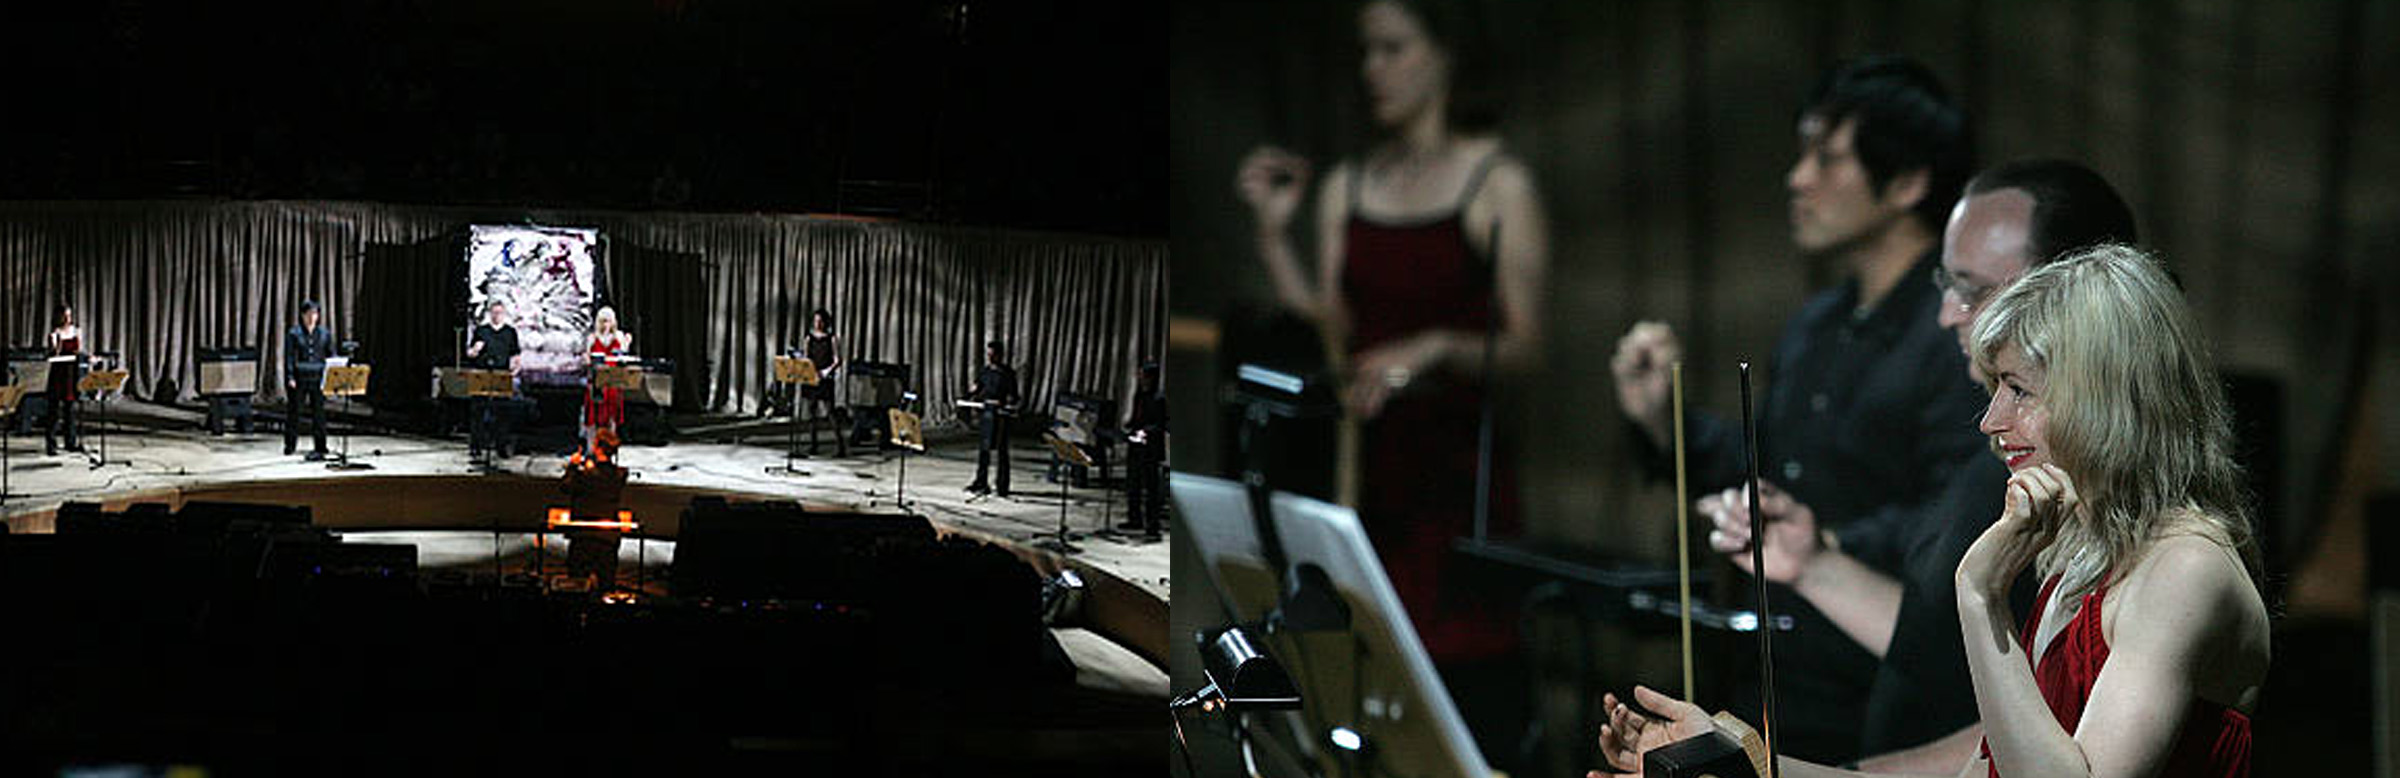 Produced by The NY Theremin Society under the leadership of Dorit Chrysler, the concert took place on May 26th, 2007 at the LA Disney Hall, featuring ten Thereminists: Roger Ballenger, Dorit Chrysler, Carolina Eyck, Kevin Lee, Kento Oiwa, Armen Ra, Rob Schwimmer, Dalit Warshaw, Lara Wickes and Robby Virus. The Theremin Orchestra was conducted by Ben Wickes and Steven Martin. Not since 1930 at Carnegie Hall had a Ten Piece Theremin Orchestra taken the stage.